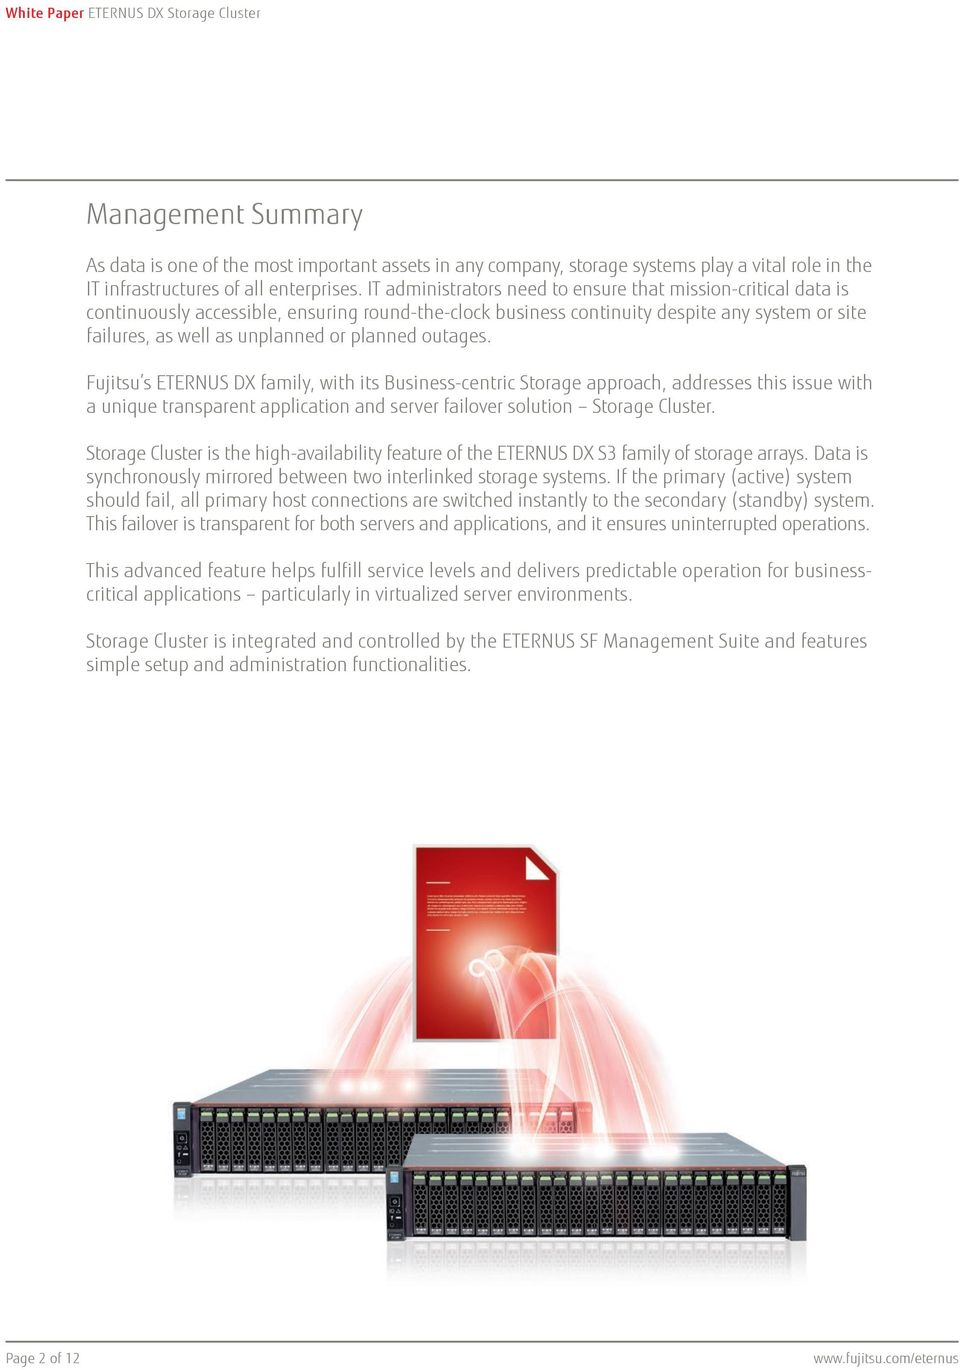 planned outages. Fujitsu's ETERNUS DX family, with its Business-centric Storage approach, addresses this issue with a unique transparent application and server failover solution Storage Cluster.